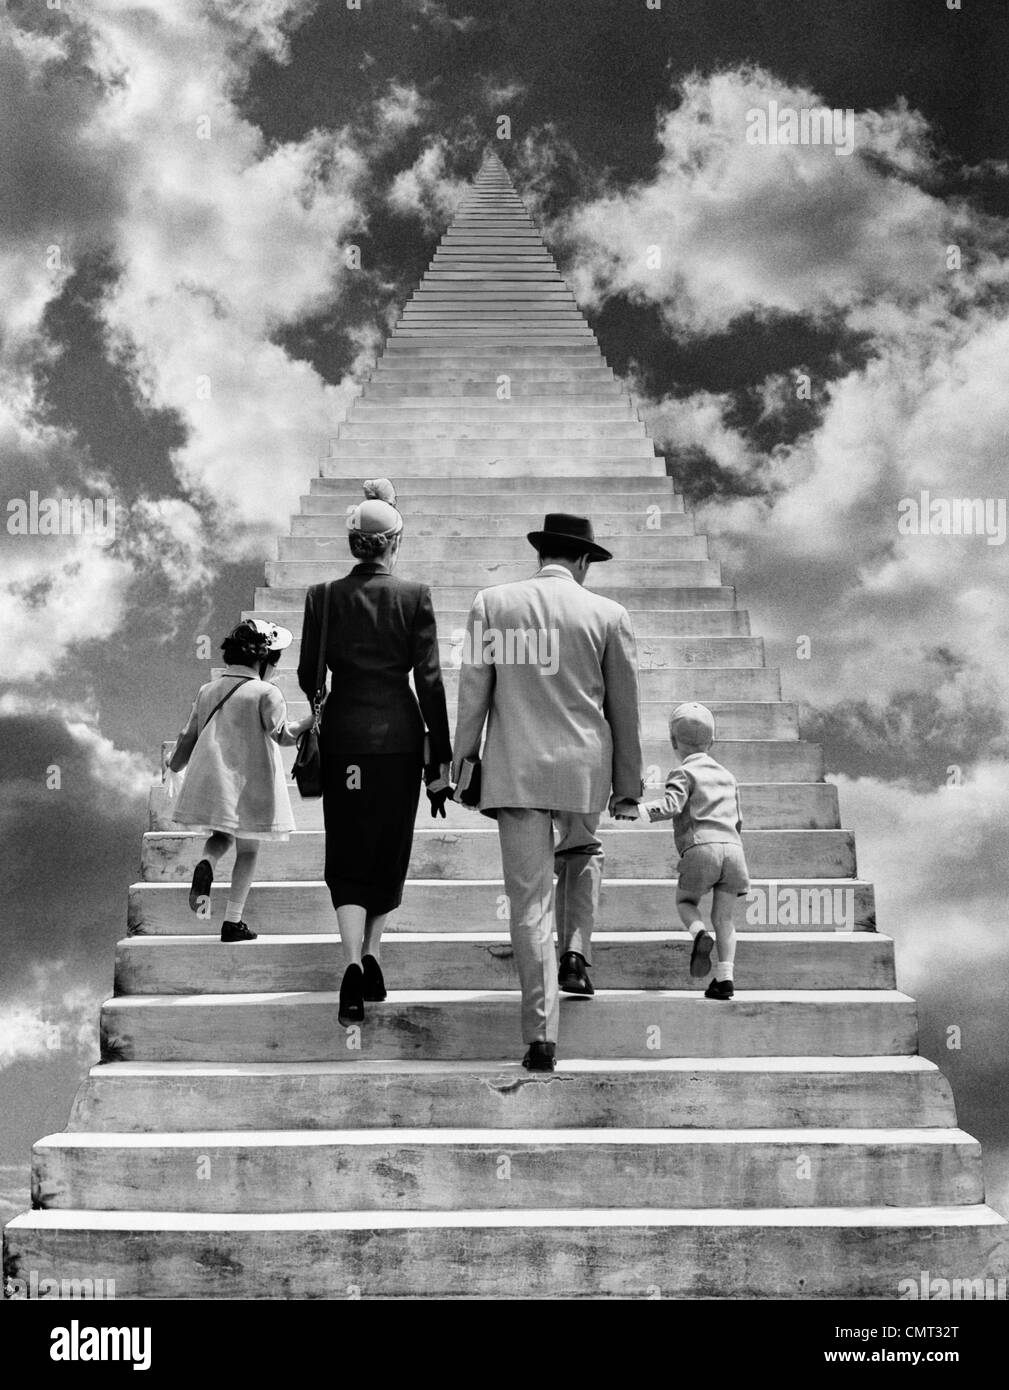 1950s BACK VIEW MONTAGE FAMILY FATHER MOTHER DAUGHTER SON WALKING UP STAIRWAY TOGETHER INTO THE SKY SYMBOLIC - Stock Image